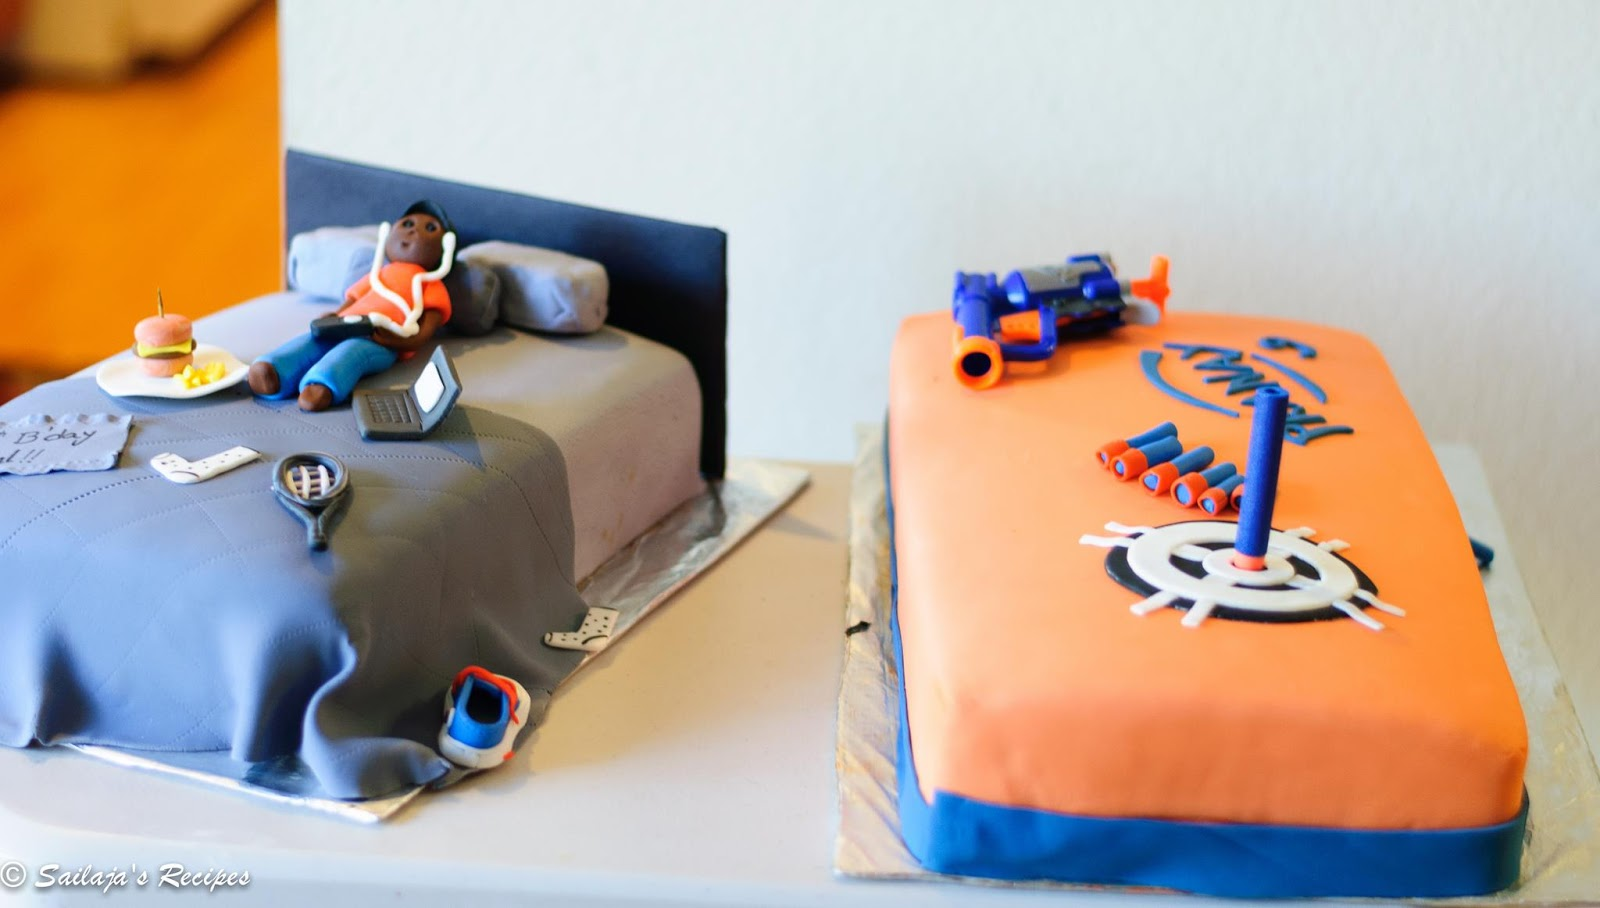 Sailajas Recipes Teenage boys Bed room and Nerf Gun theme cake